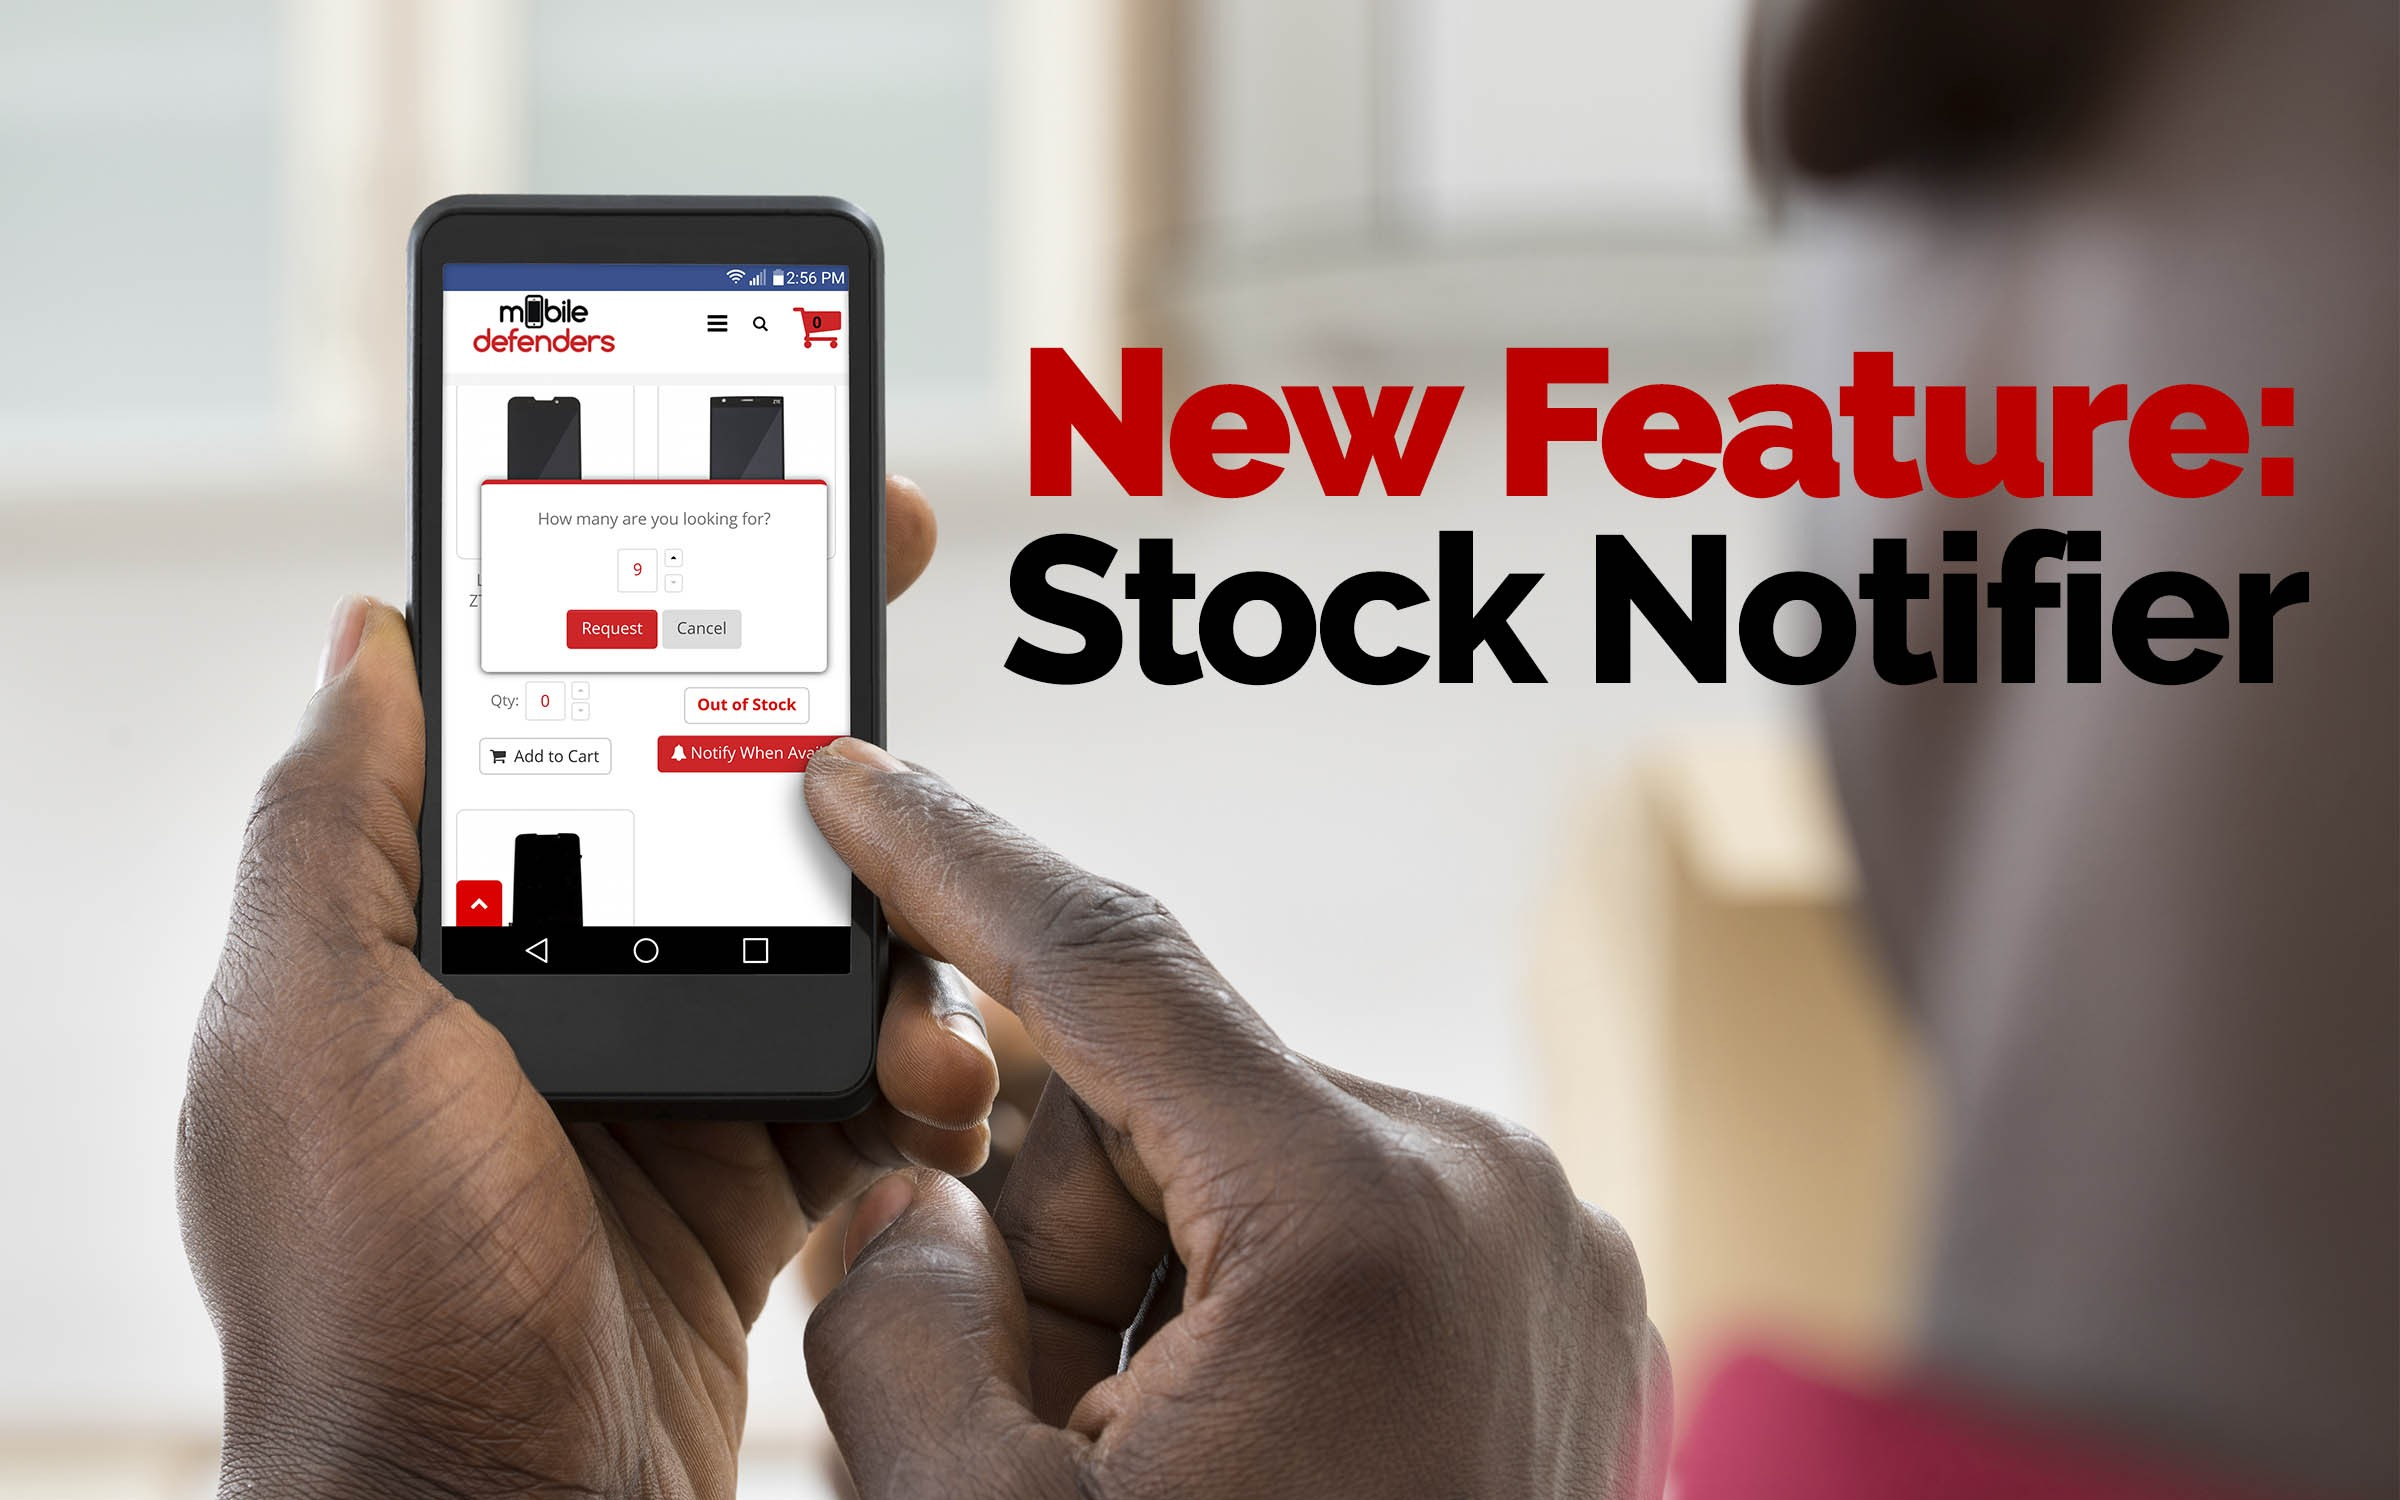 [NEW FEATURE] In-Stock Notification